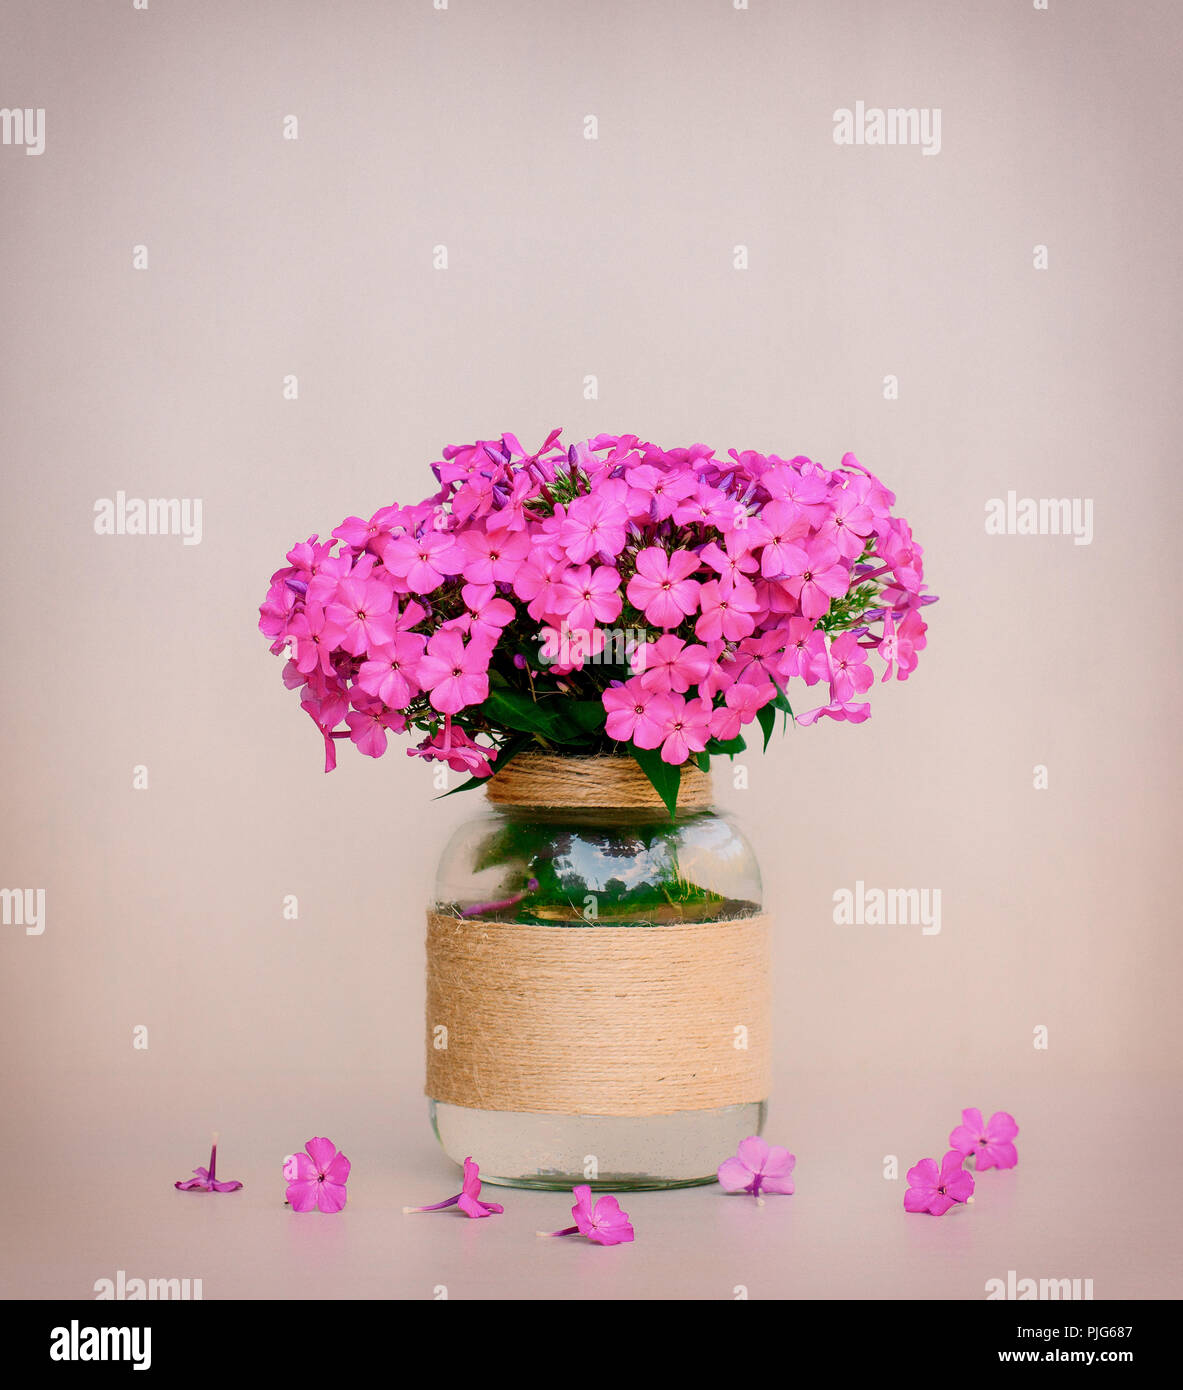 A Bouquet Of Flowers Phlox In A Homemade Glass Vase Closeup On Pink